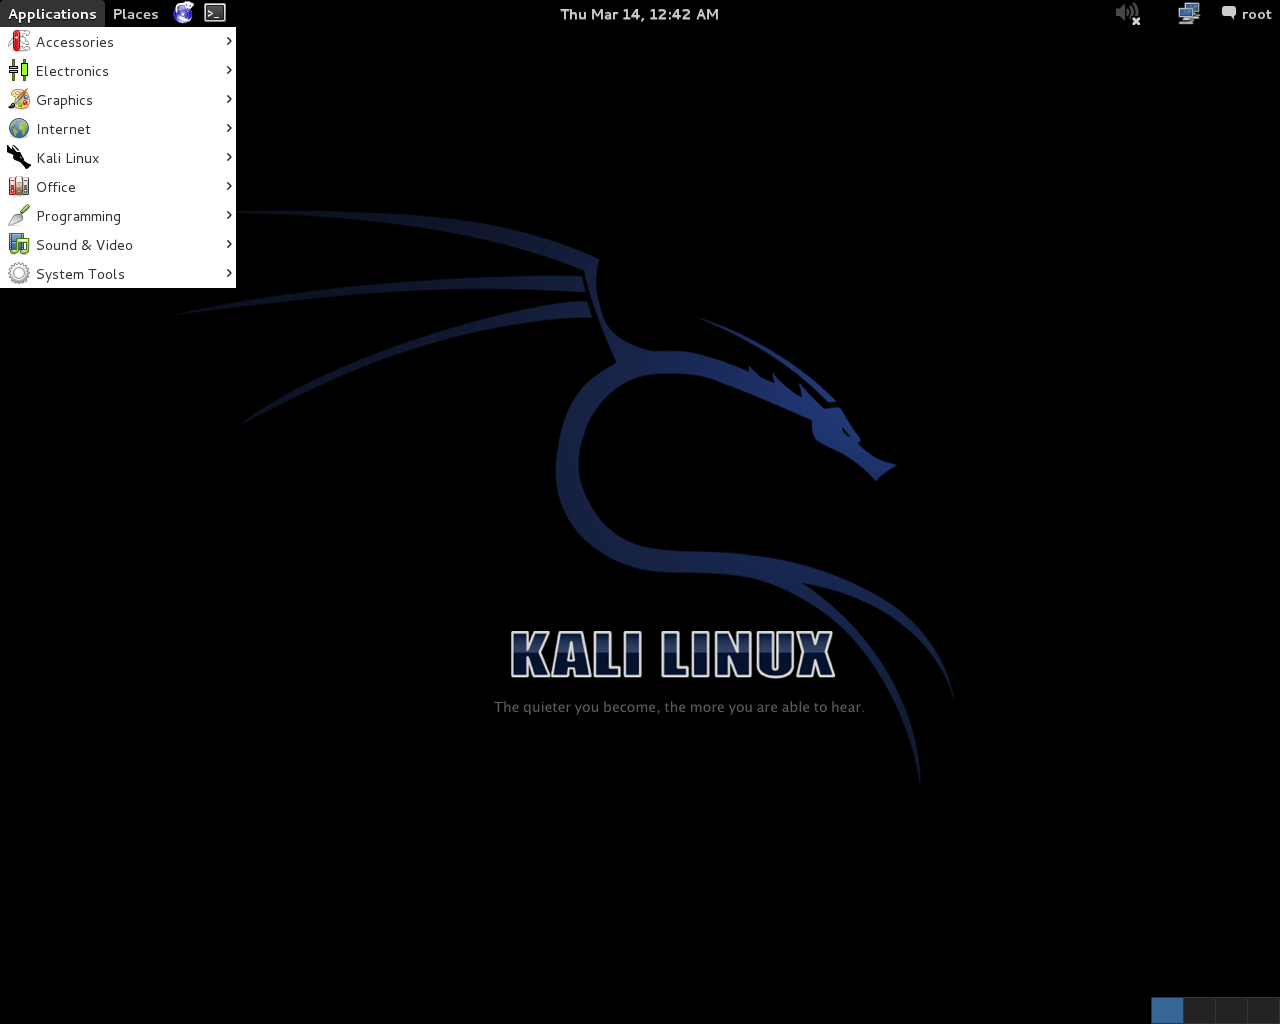 Kali Linux 1 0 3 Brings Accessibility Features for Blind Users